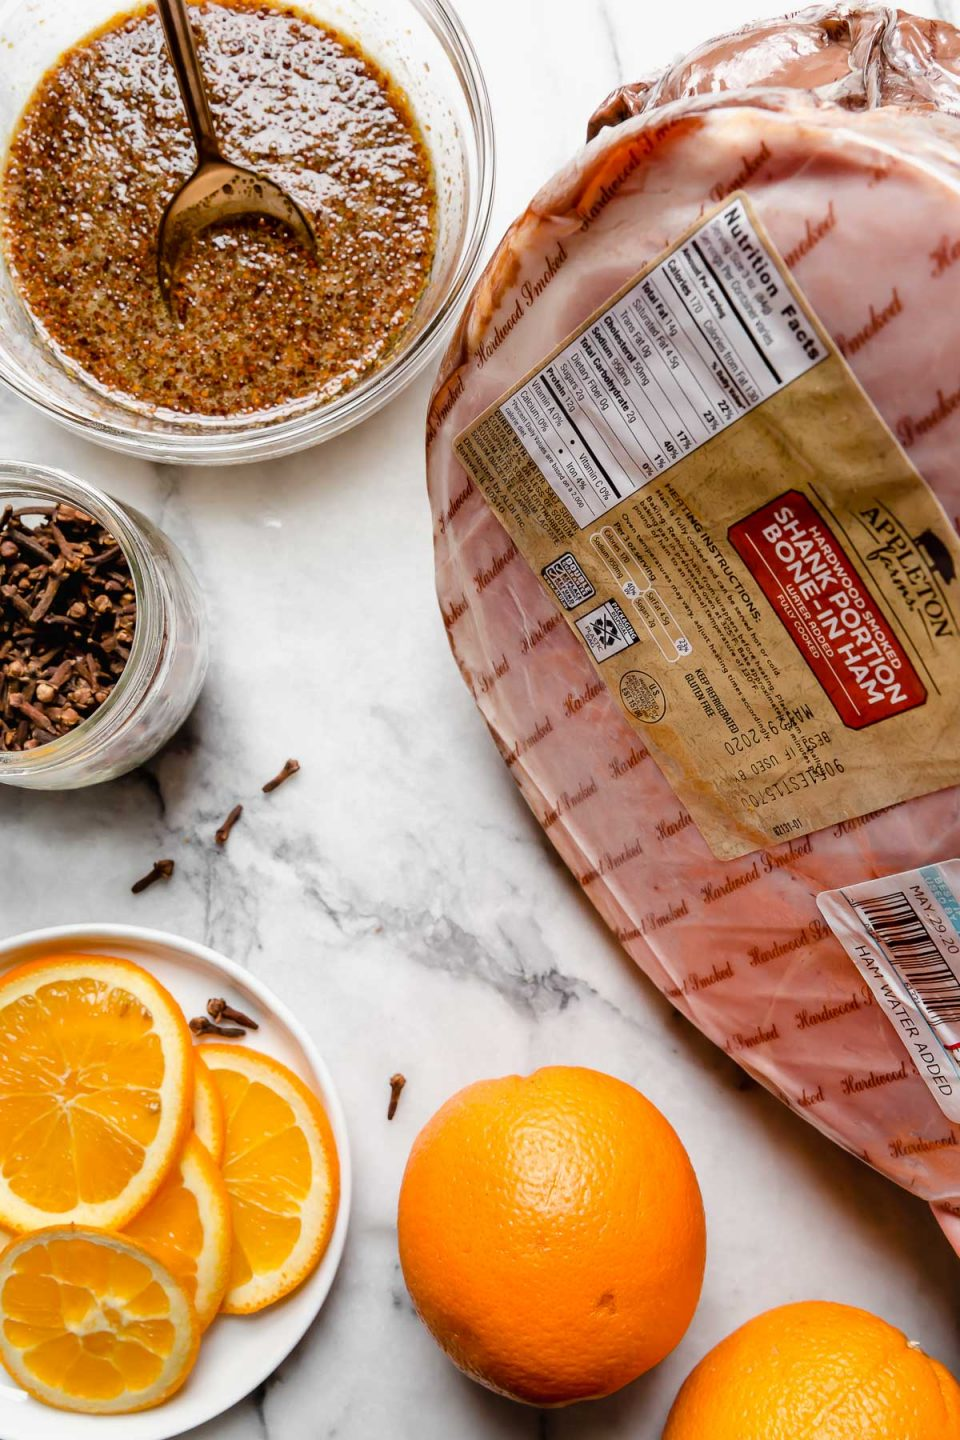 Ingredients for this maple glazed ham recipe on a white marble surface: smoked ham, oranges, cloves & maple glaze.